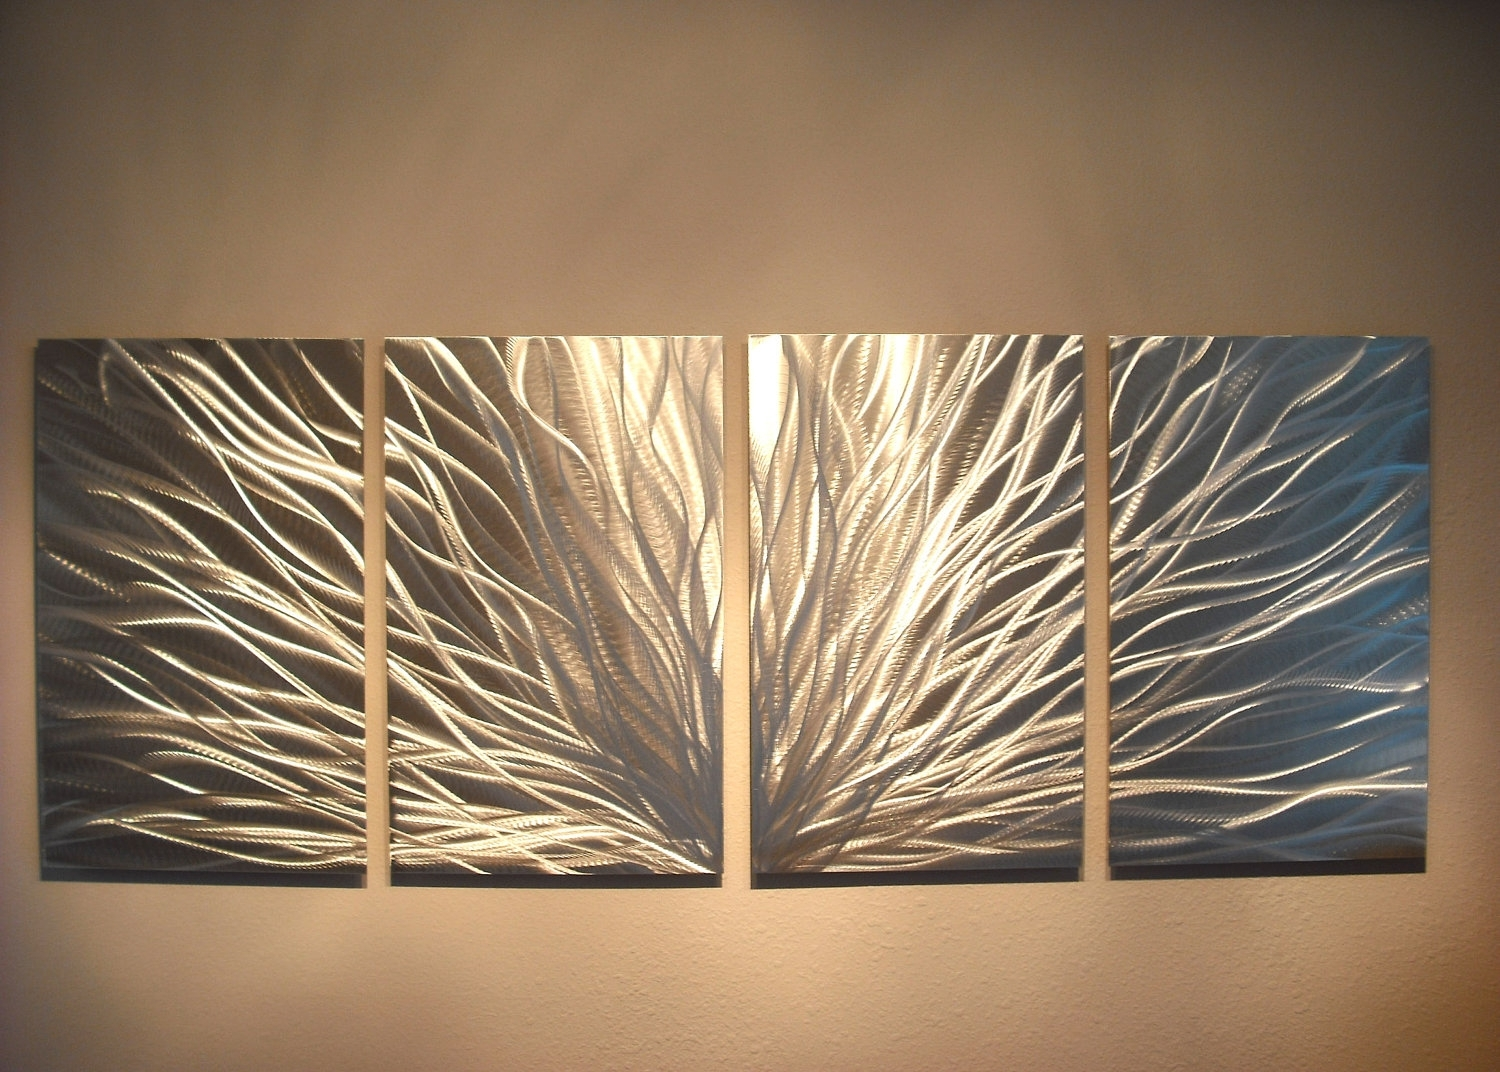 New Large Iron Wall Decor : Large Iron Wall Decor Ideas within Iron Wall Art (Image 11 of 20)